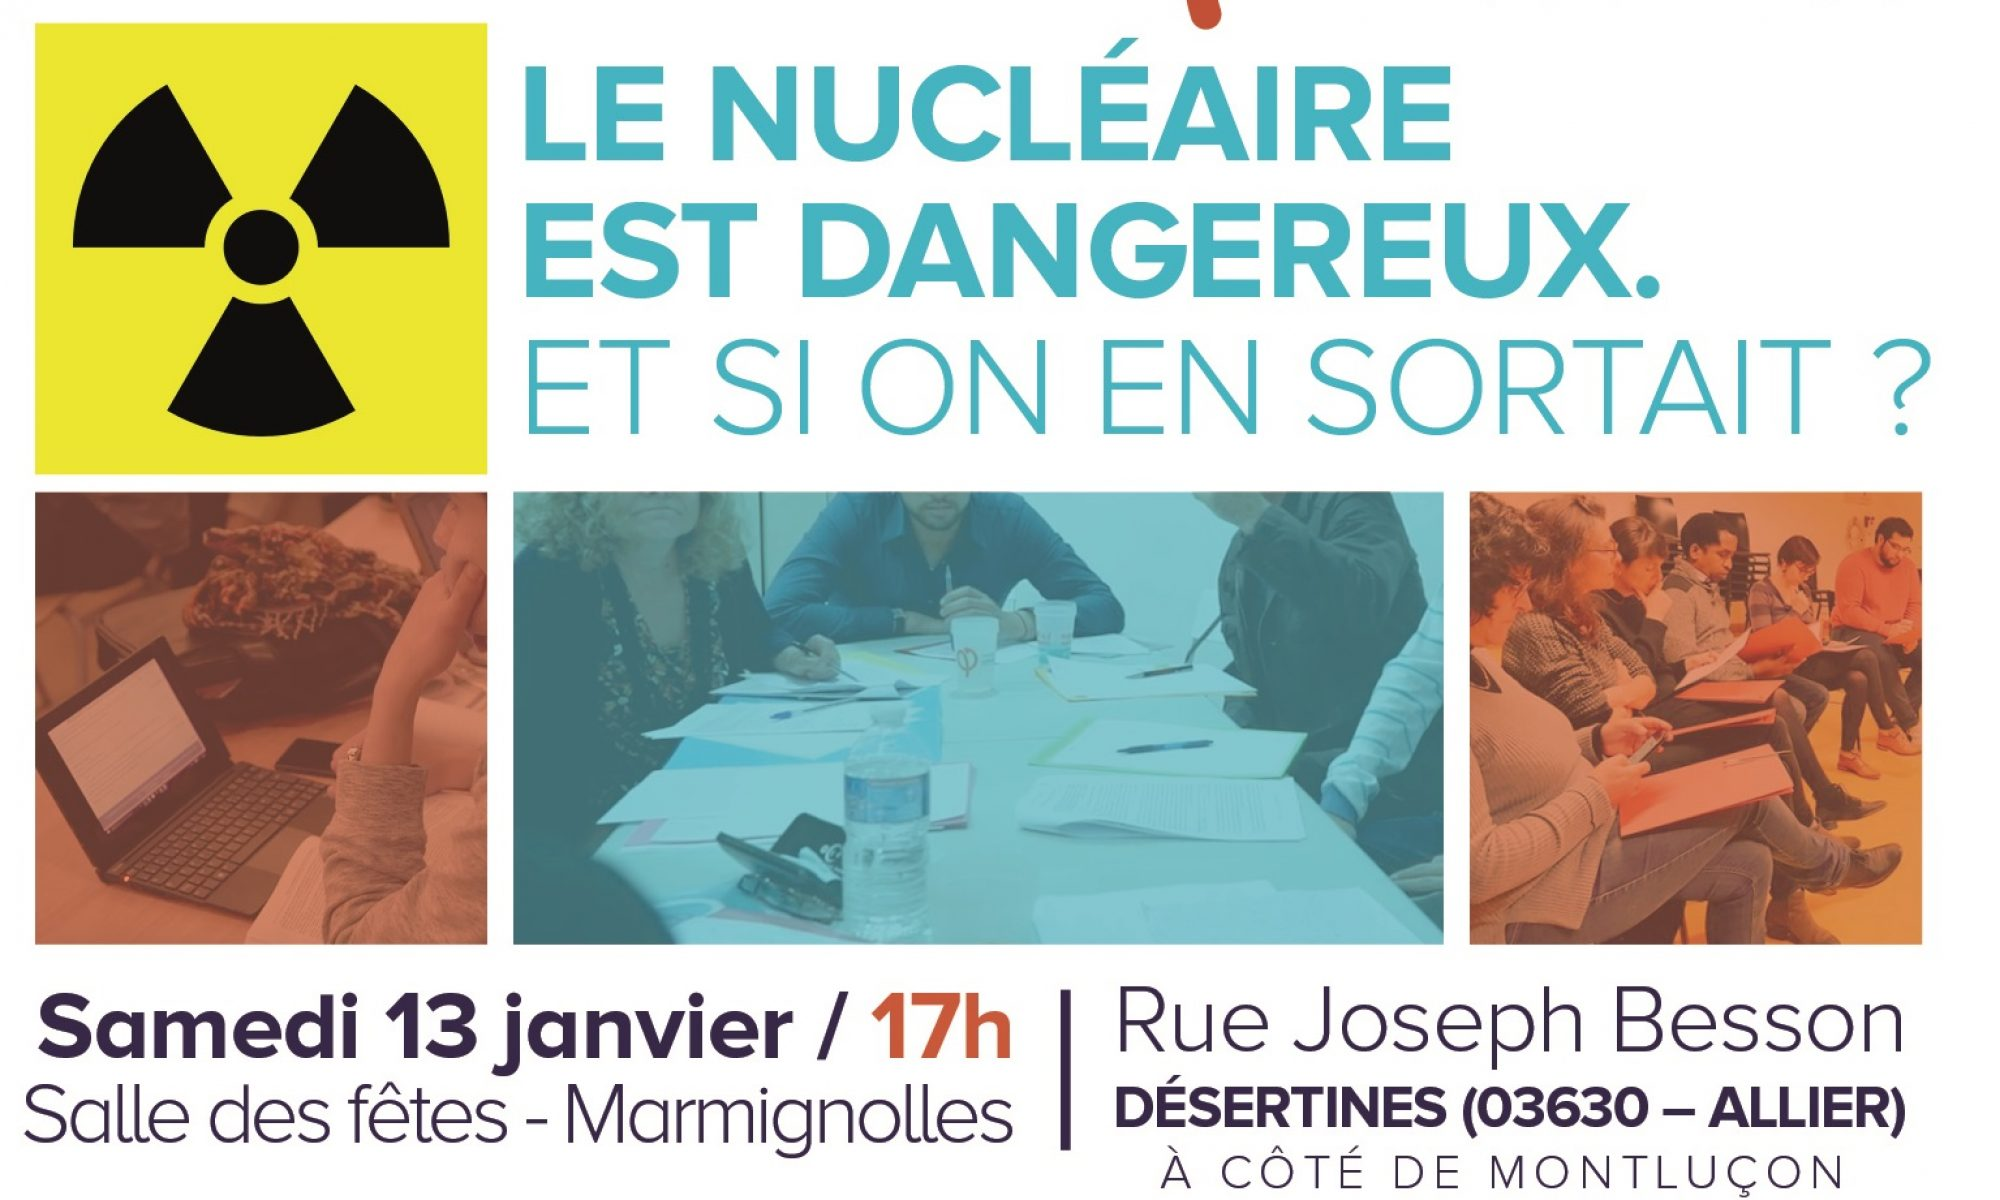 ADL_Nucleaire désertines